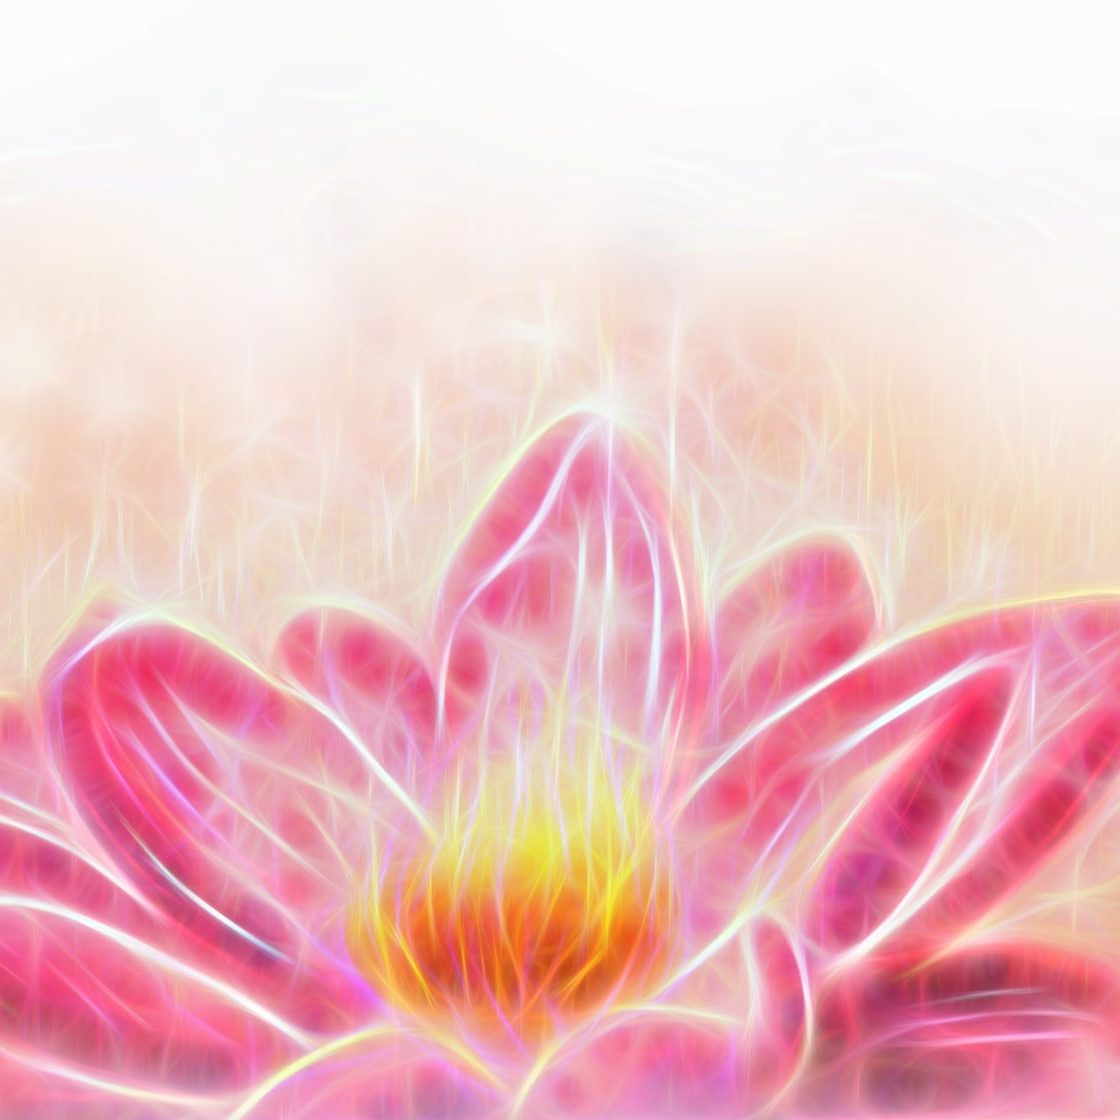 Lotus flower and white circle bokeh and white mist. Illustration collage fractal effect.